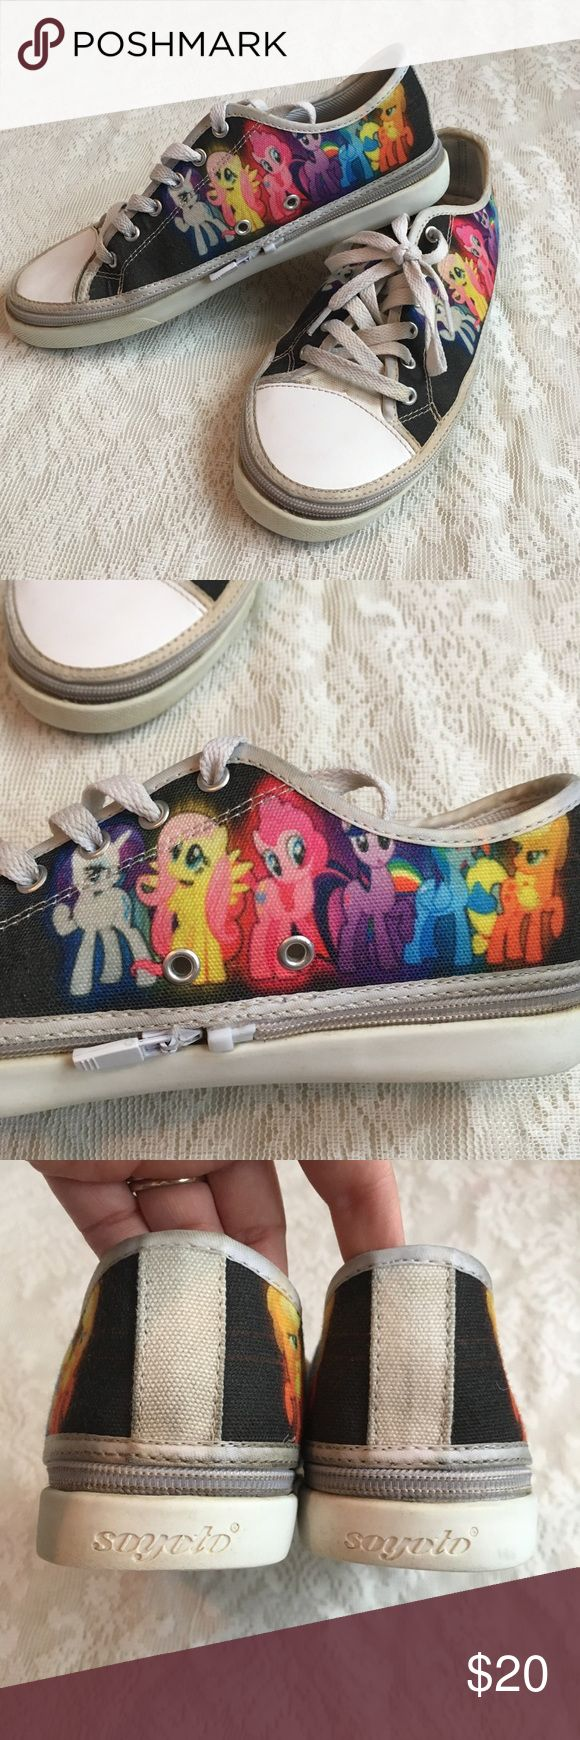 """Custom My little pony zip up sneakers Adorable """"My Little Pony"""" custom converse style shoes with Pinkie Pie, Rainbow Dash, Fluttershy, Apple Jack, Twilight Sparkle and Rarity. Unisex. The tops have a zipper to switch out other tops available from the company! Light wear, but a super cute must have for Pony Fanatics! Soyoto Shoes Sneakers"""